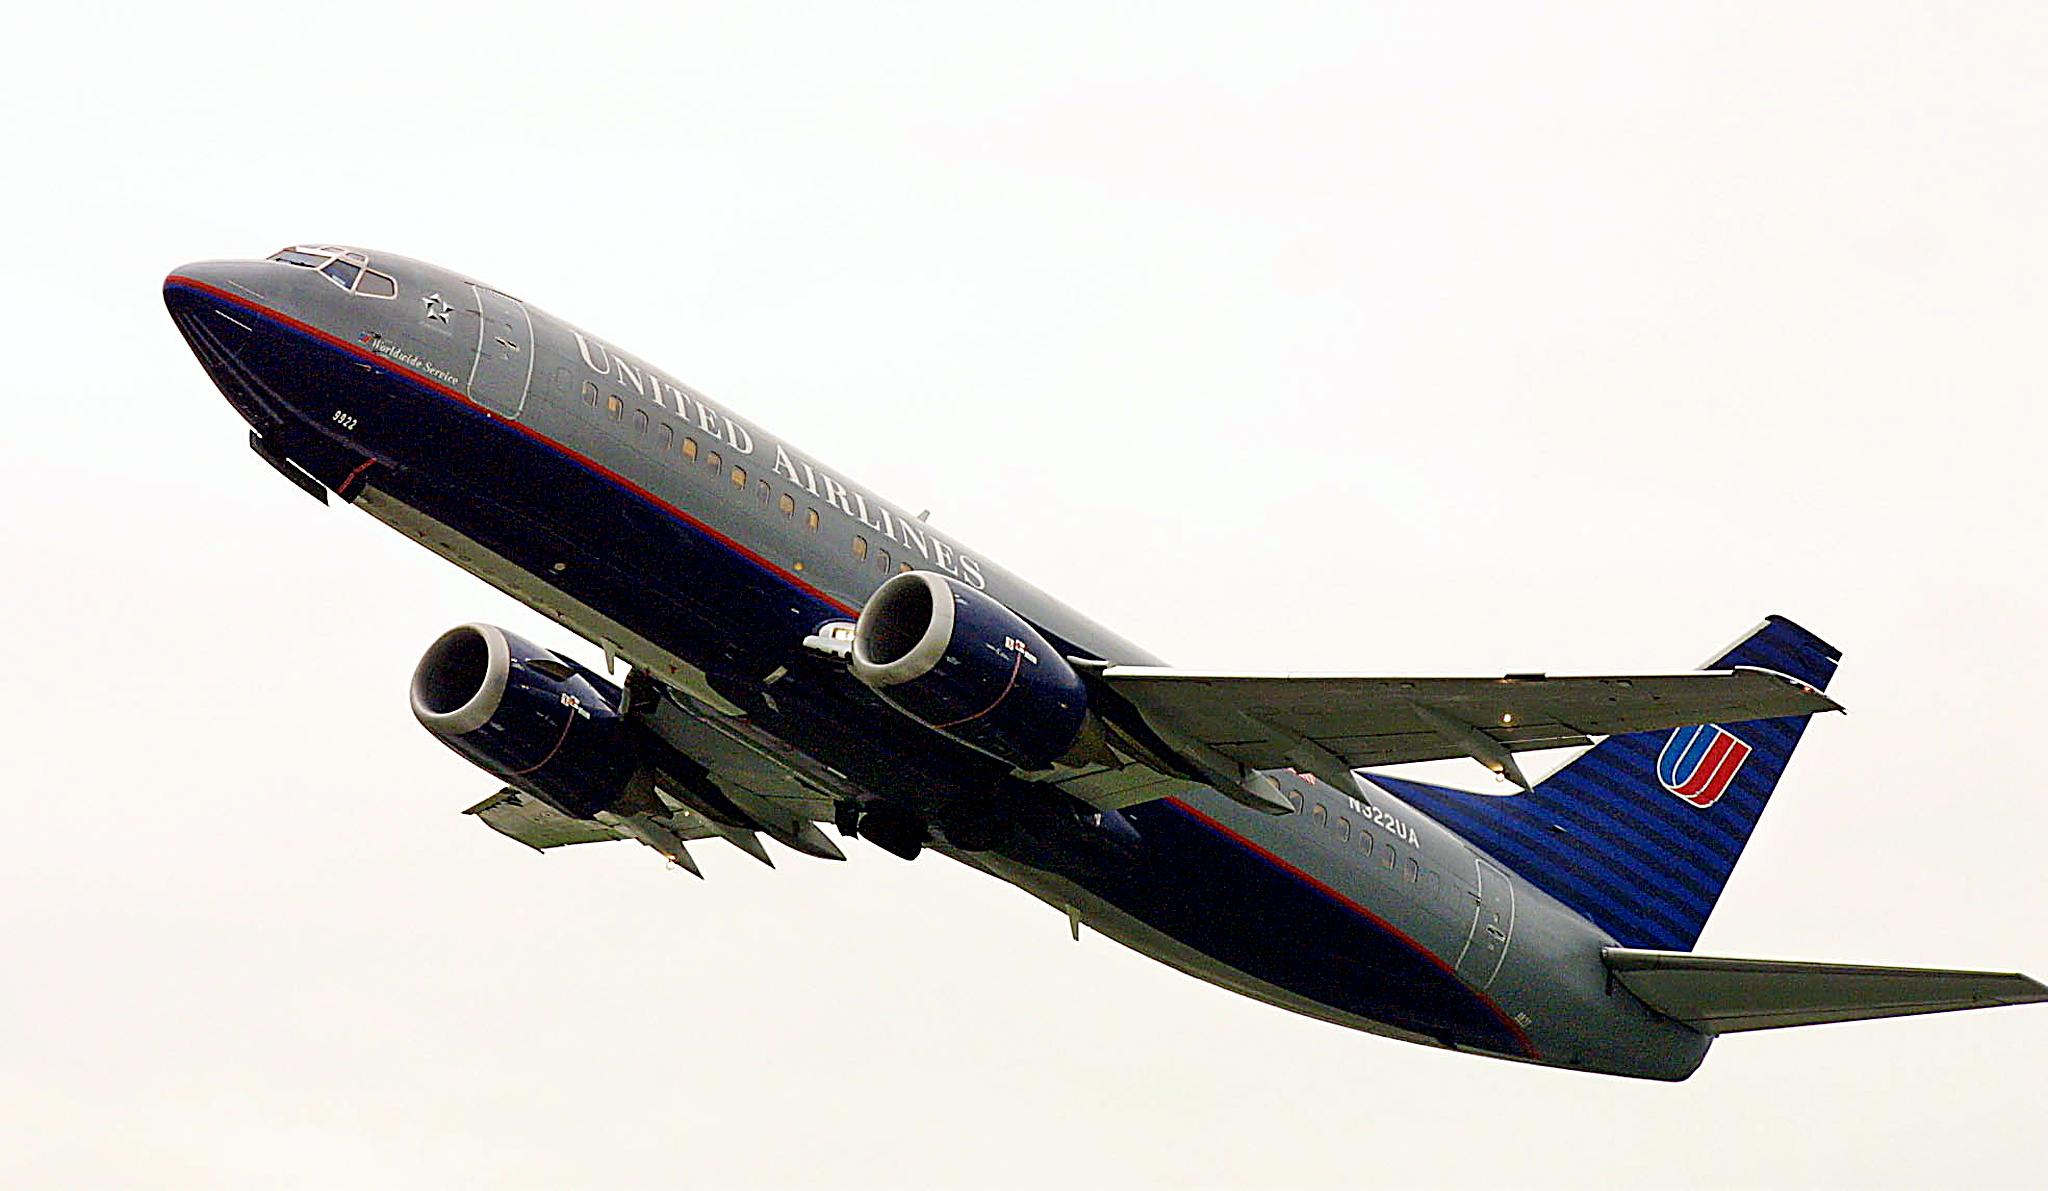 CHICAGO, UNITED STATES:  A United Airlines jet takes off from O'Hare International Airport in Chicago, Illinois 17 September, 2001. The stock of Chicago-based United Airlines plunged along with other US air carriers as trading reopened on the nation's stock exchanges 17 September.  AFP/John ZICH (Photo credit should read JOHN ZICH/AFP/Getty Images)